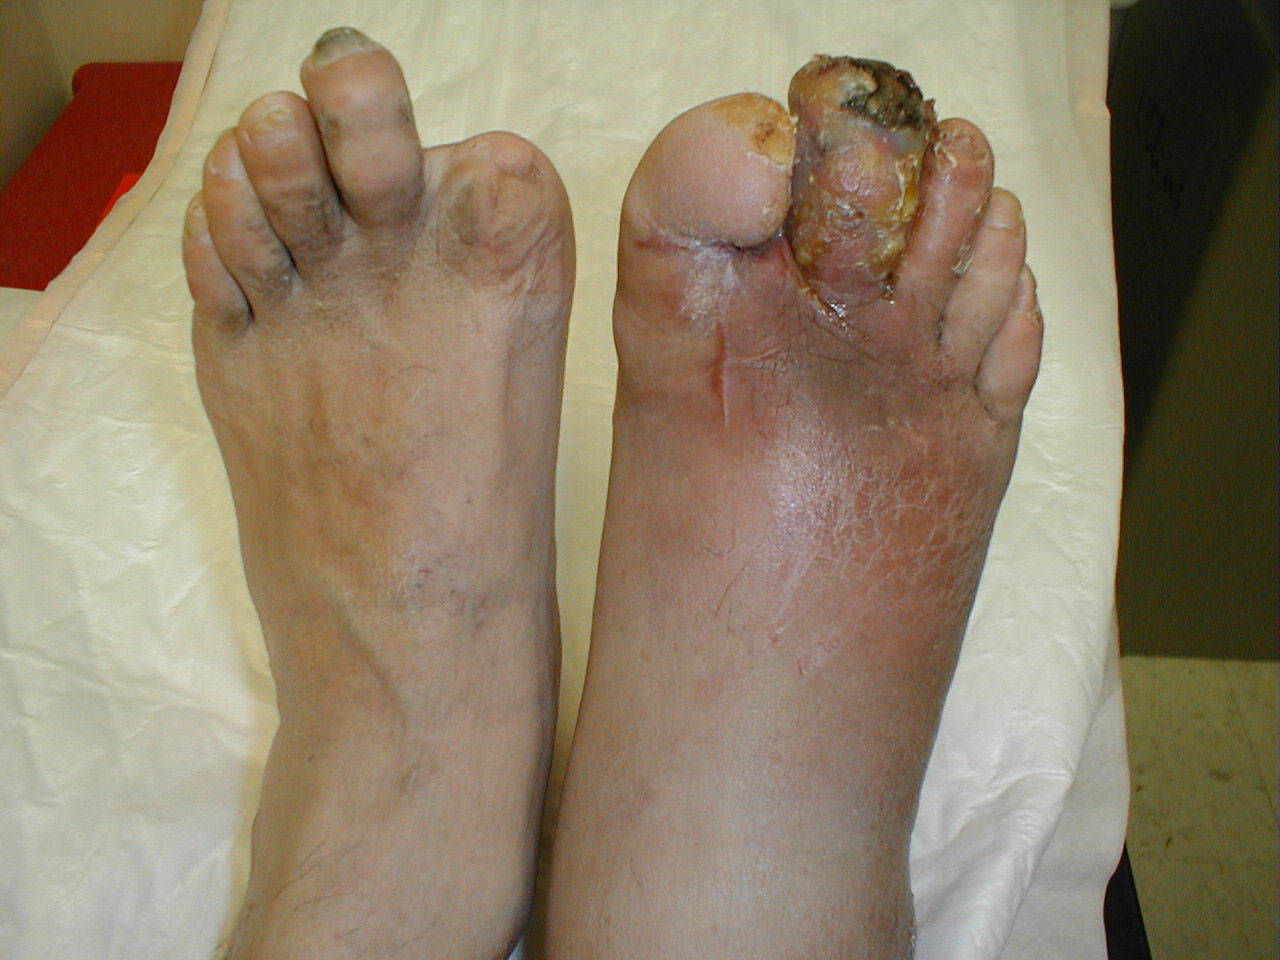 Diabetic Foot Infection Long Standing Poorly Controlled Diabetes Has Led To Peripheral